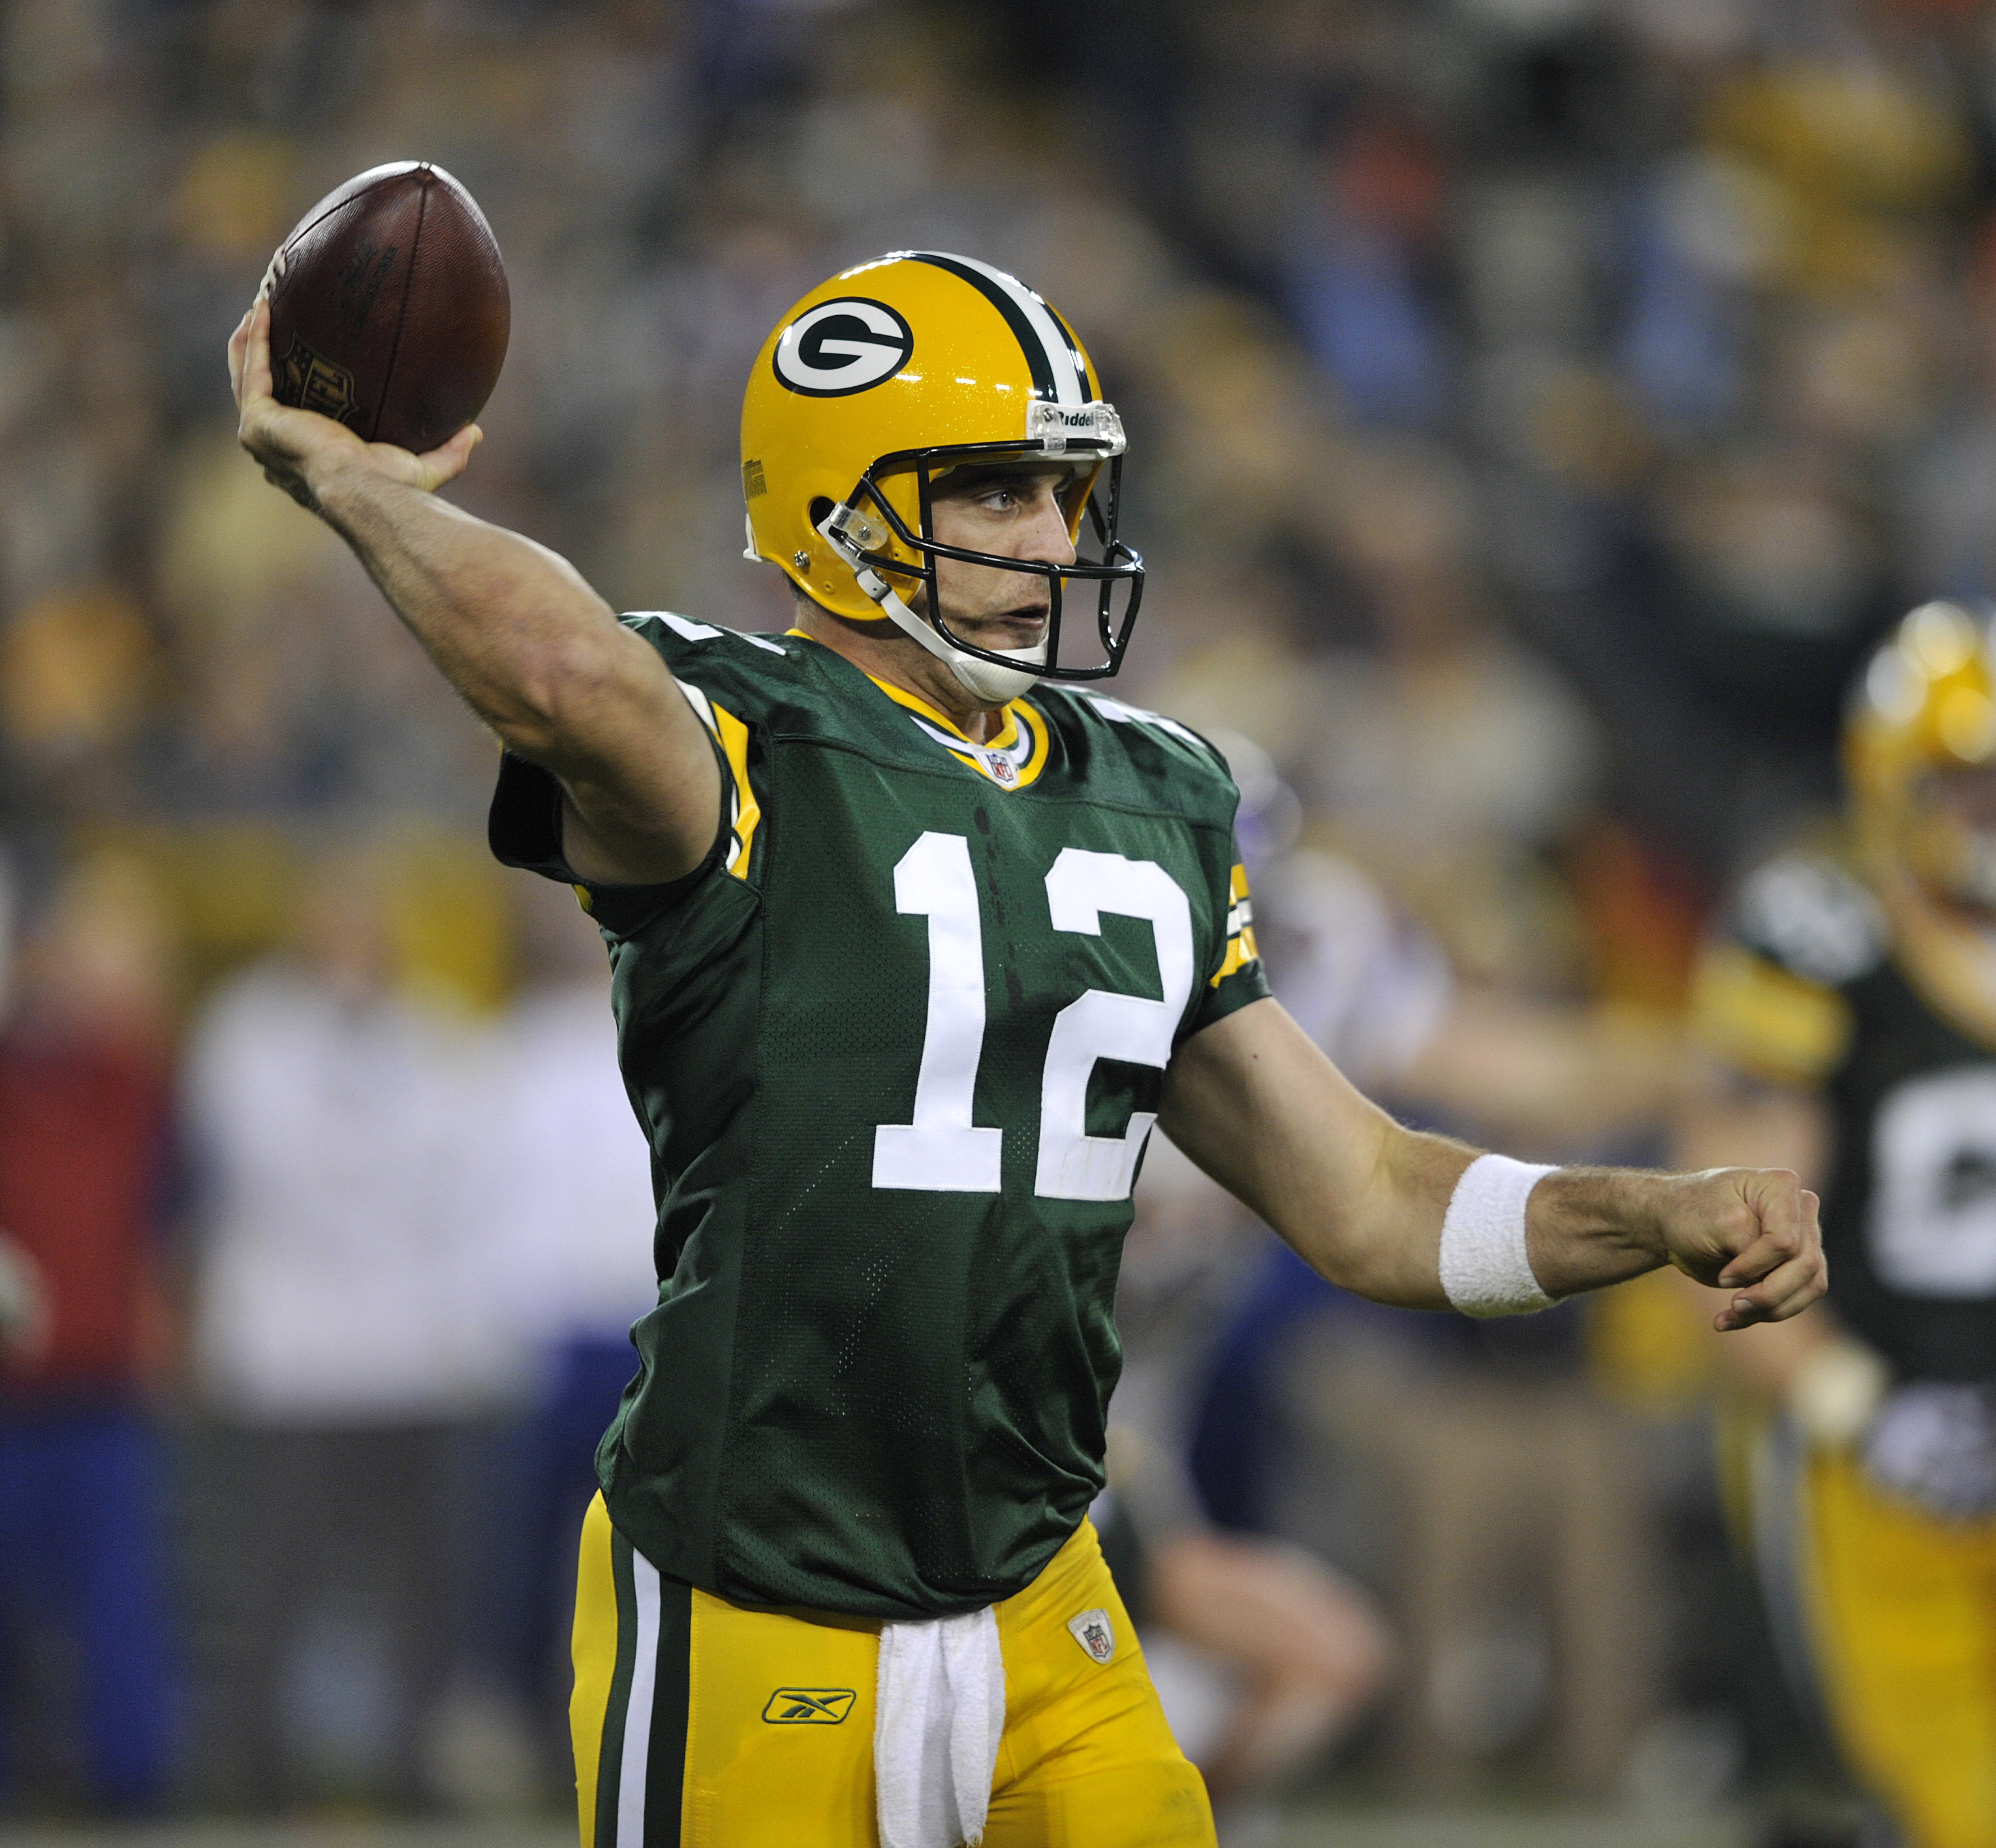 GREEN BAY, WI - OCTOBER 24:   Aaron Rodgers #12 of the Green Bay Packers passes against the Minnesota Vikings at Lambeau Field on October 24, 2010 in Green Bay, Wisconsin. (Photo by Jim Prisching/Getty Images)